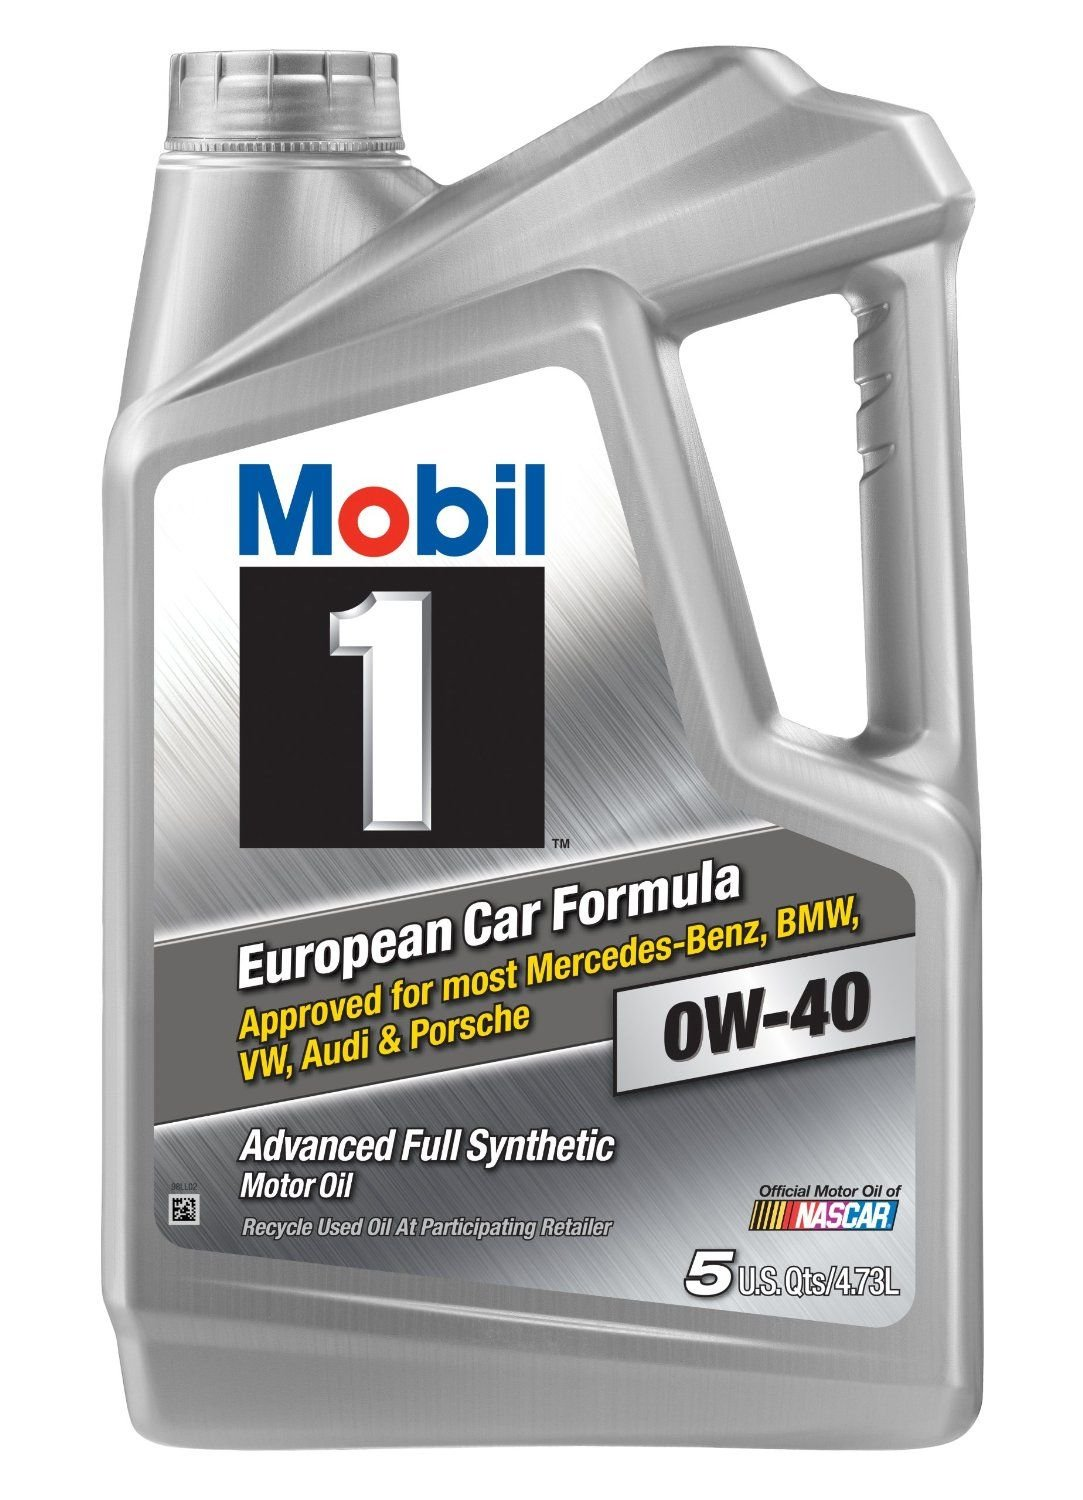 Mobil 1 (120760) 0W-40 Motor Oil, 5 Quart, Pack of 3 by Mobil 1